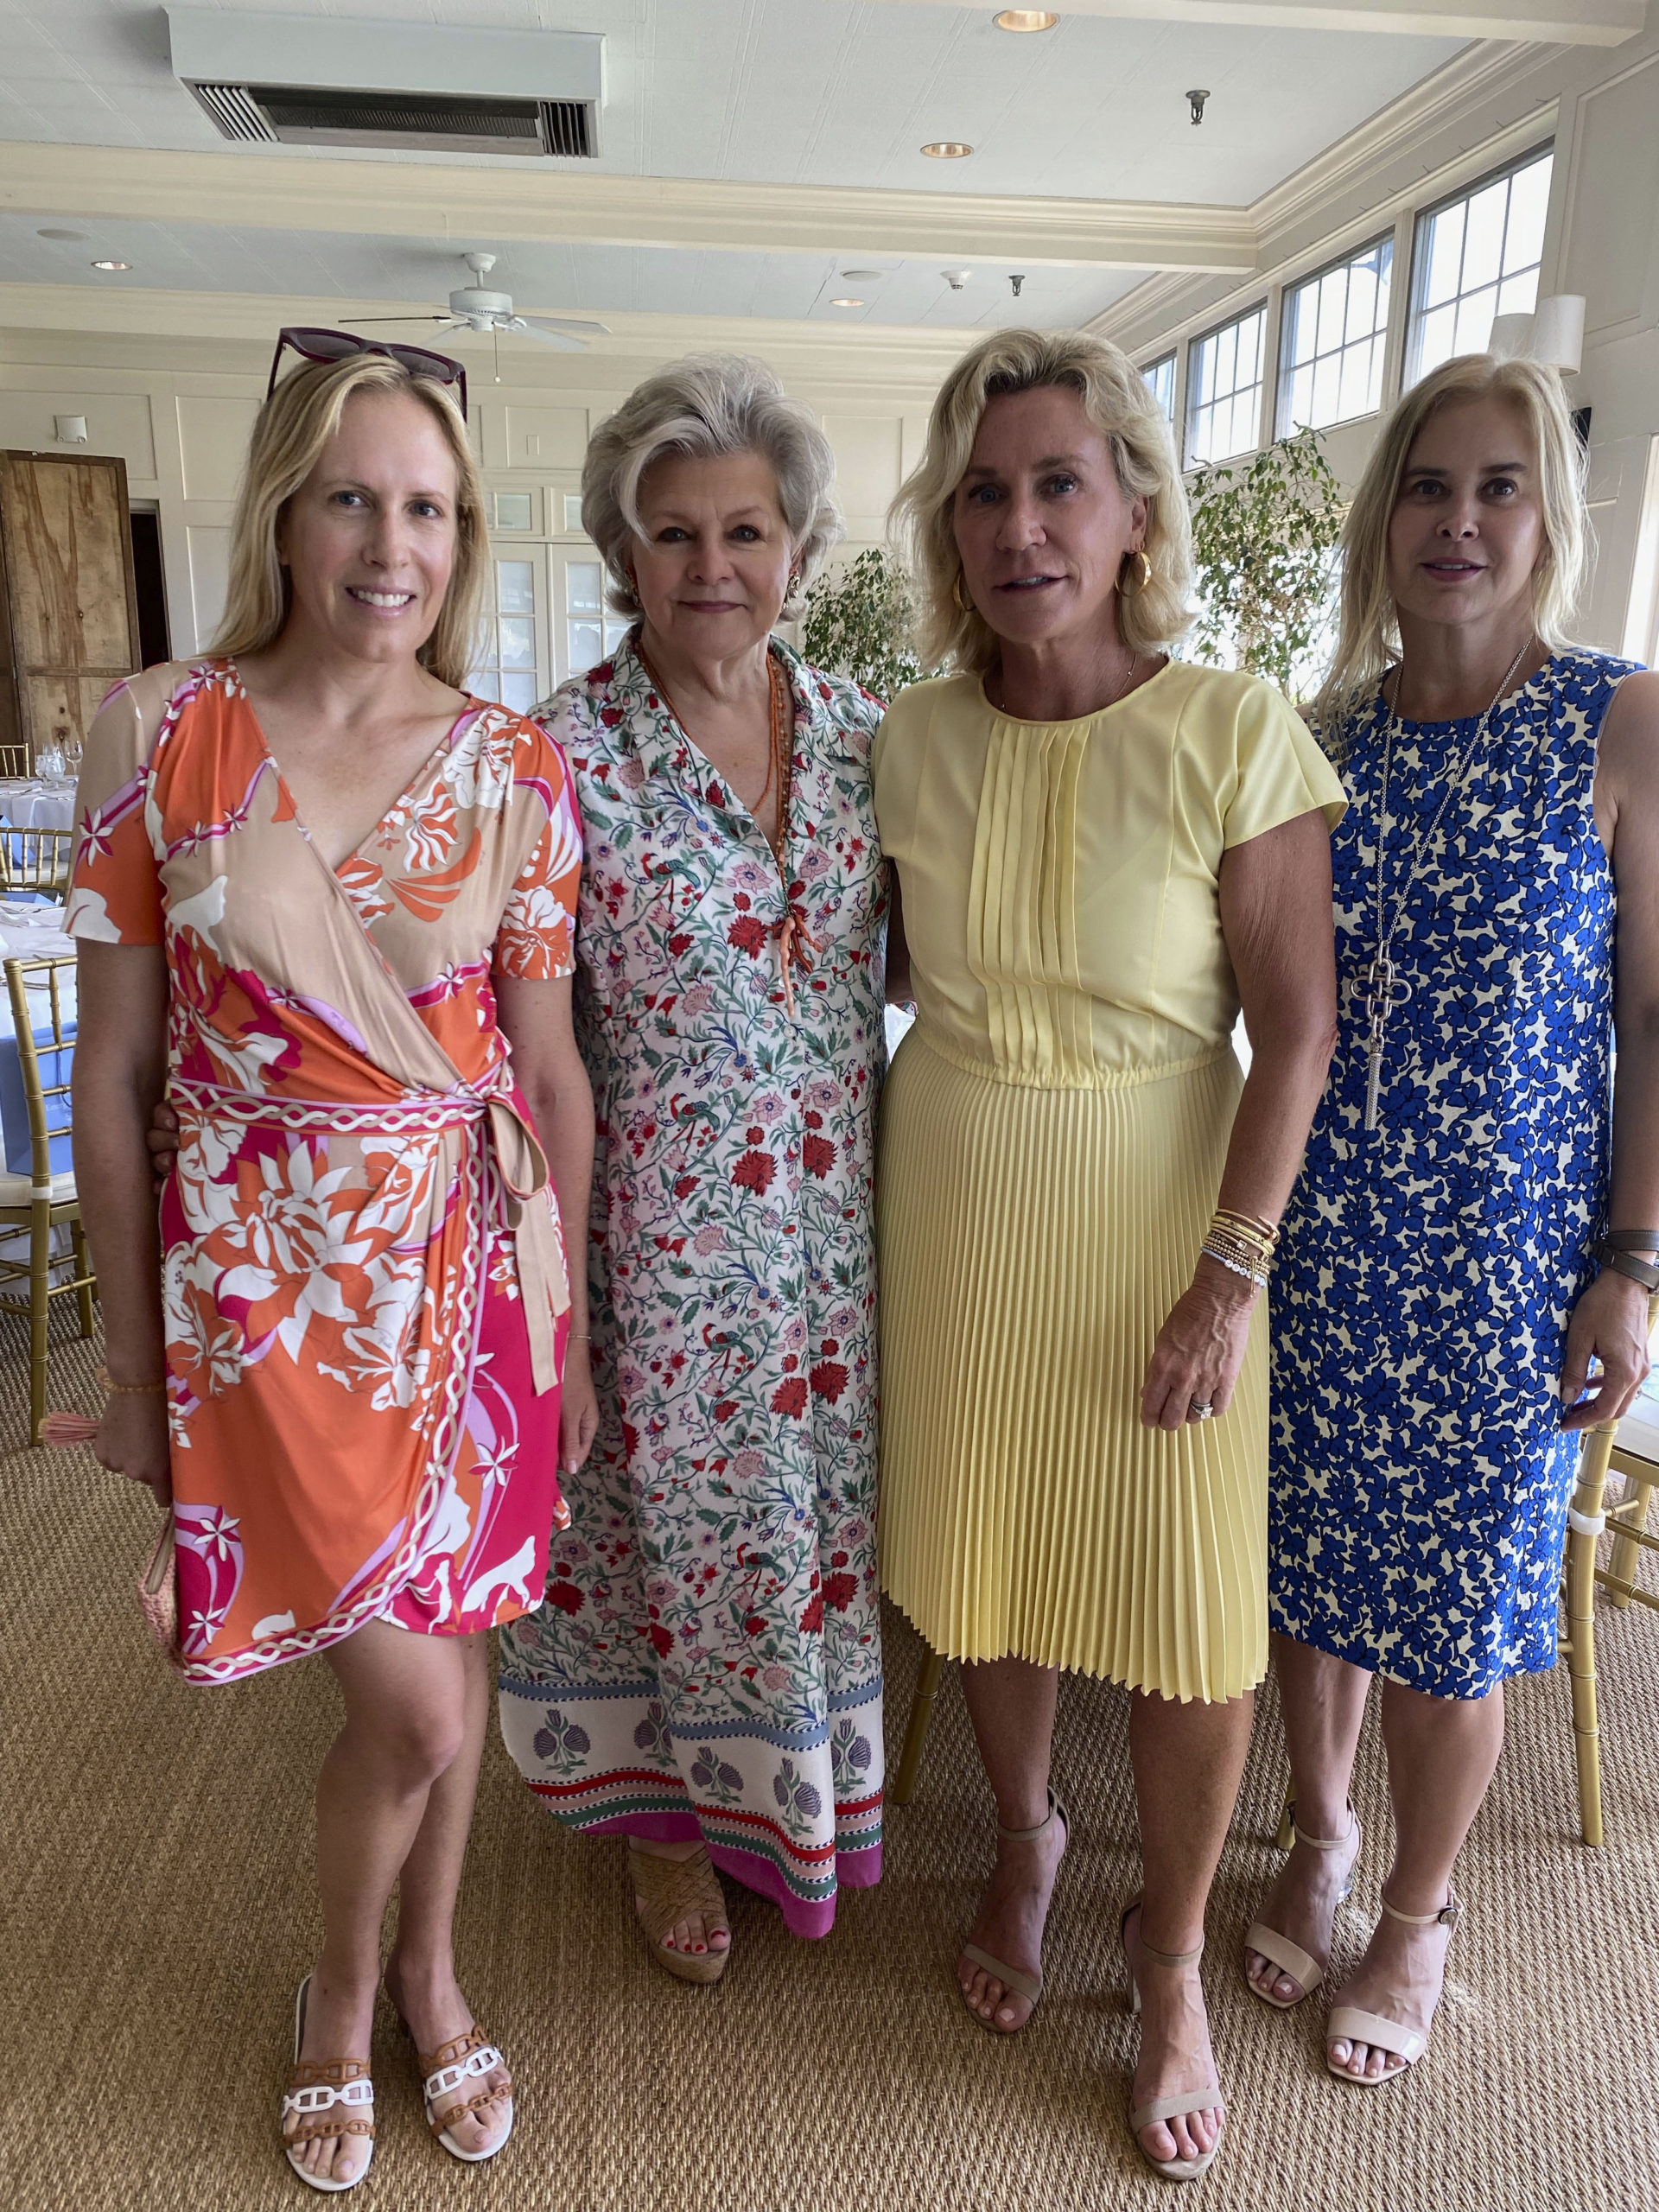 Kate Davis, Charlotte Moss, Hollis Forbes and Jill Davis at the Luncheon for the East Hampton Satellite ER.  GRED DELIA